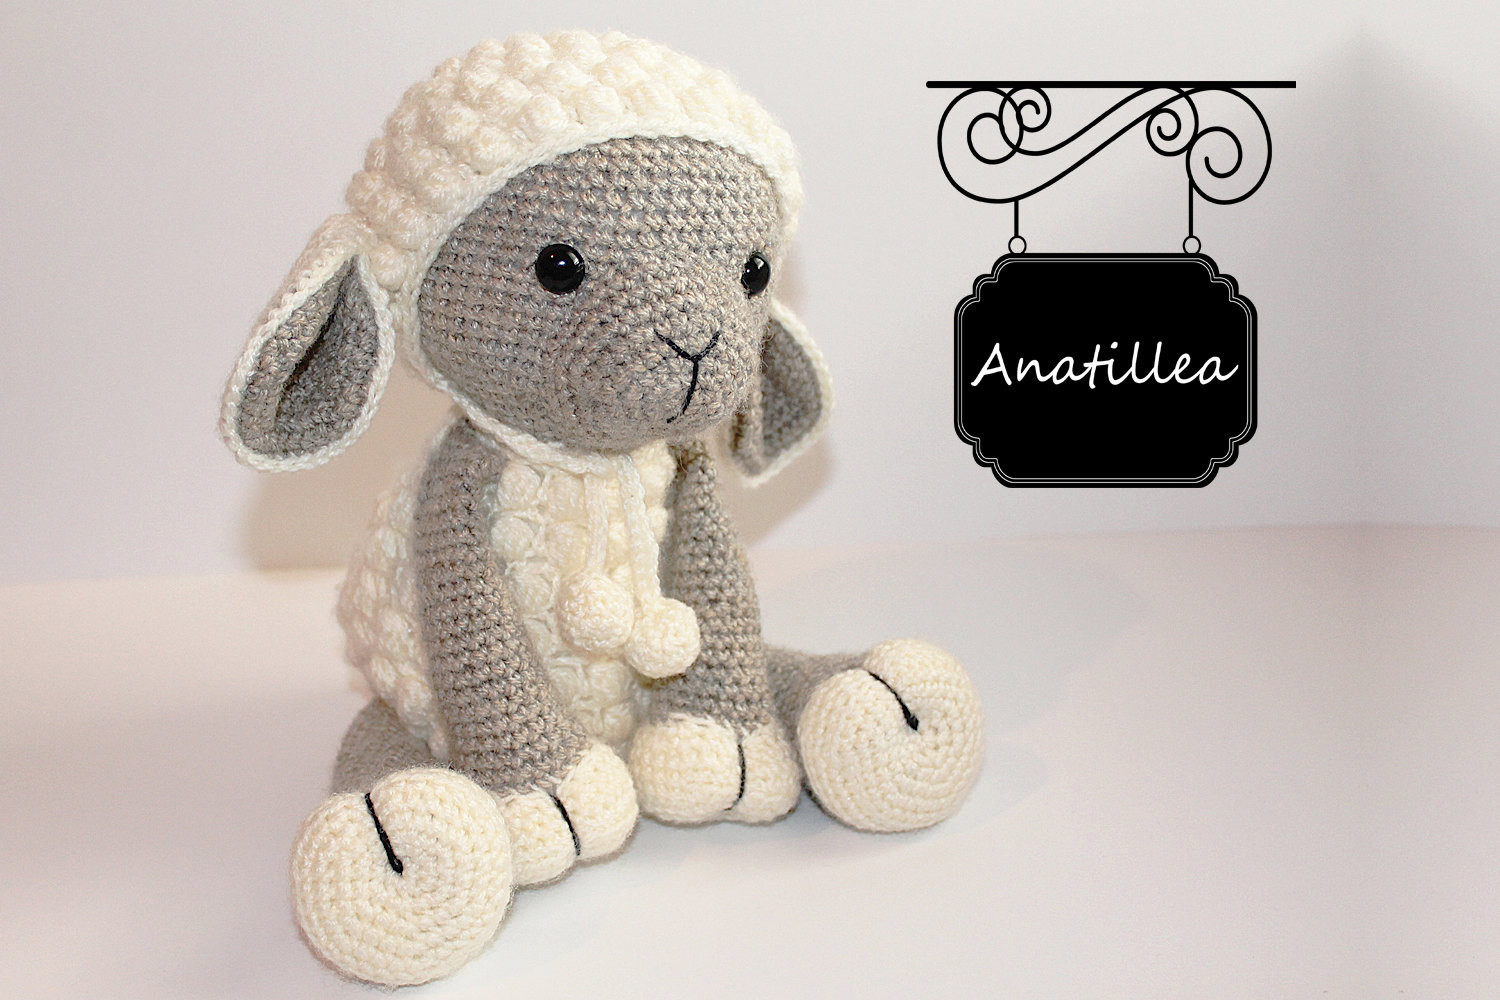 knitted animal toys Crochet and Knit